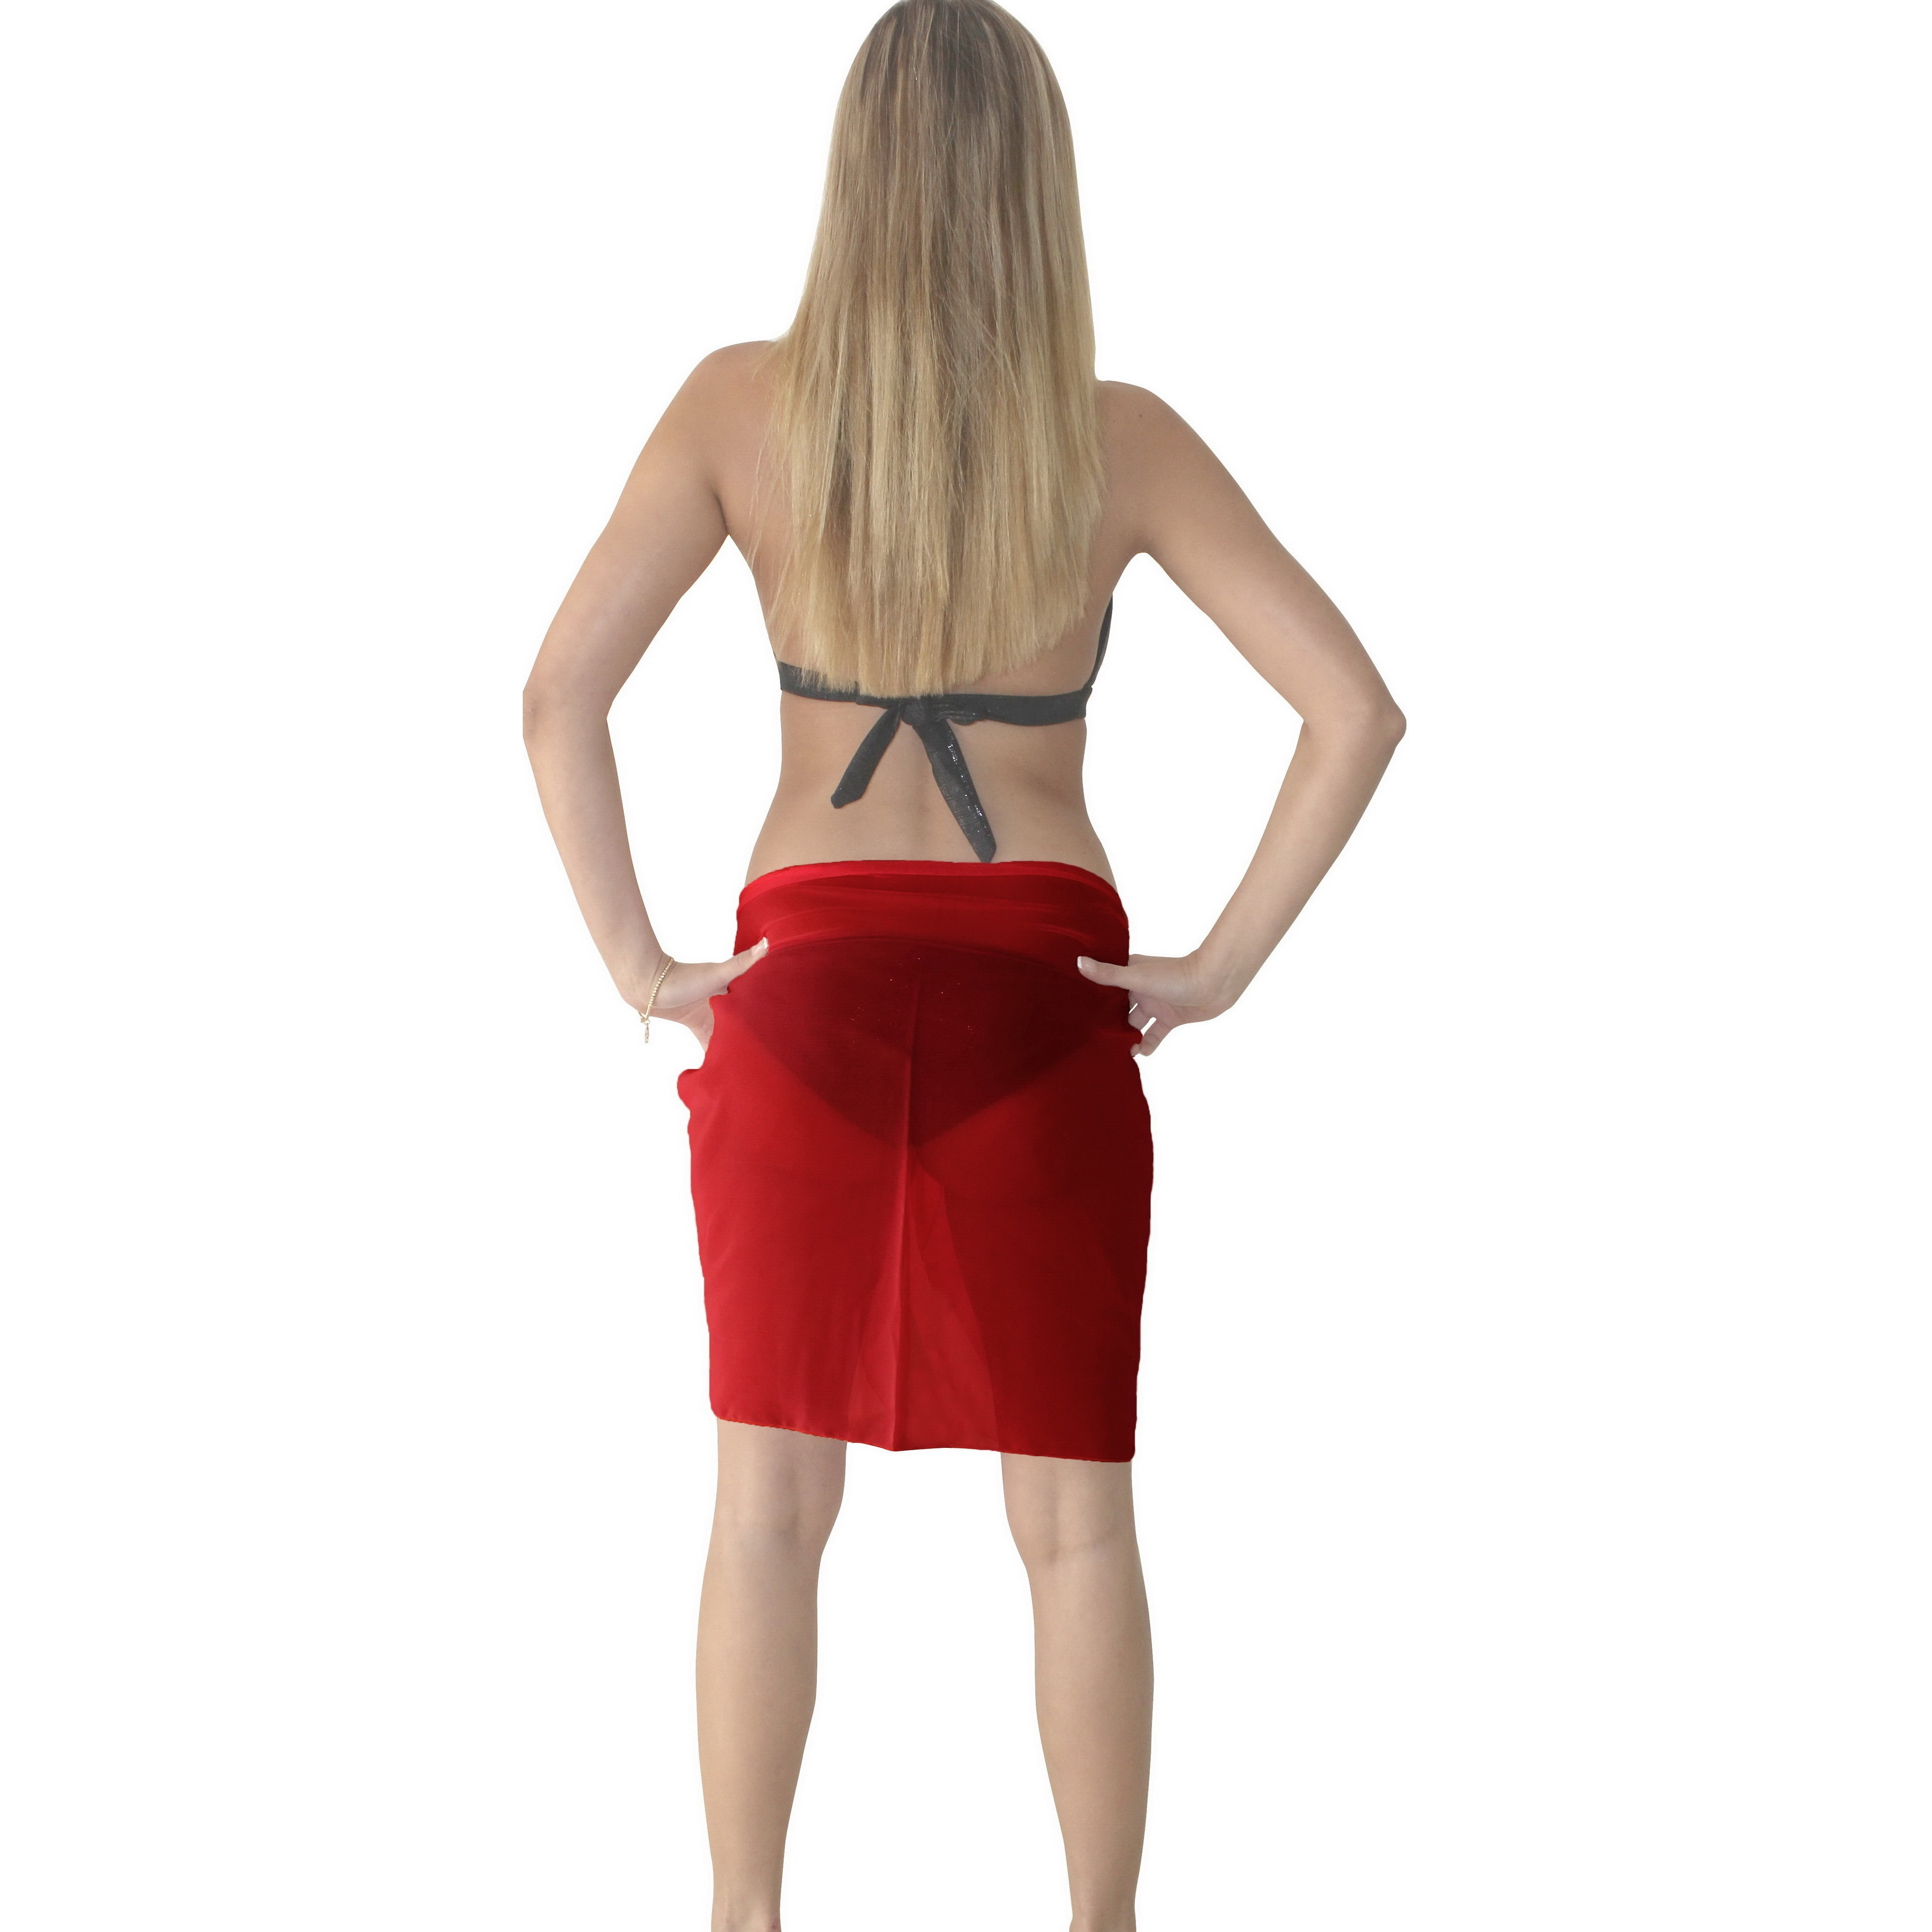 ff954daaf1f4e Shop La Leela Sheer Chiffon Solid Color Pareo Beach Swim Short Sarong Wrap  Red - Free Shipping On Orders Over $45 - Overstock - 10240673